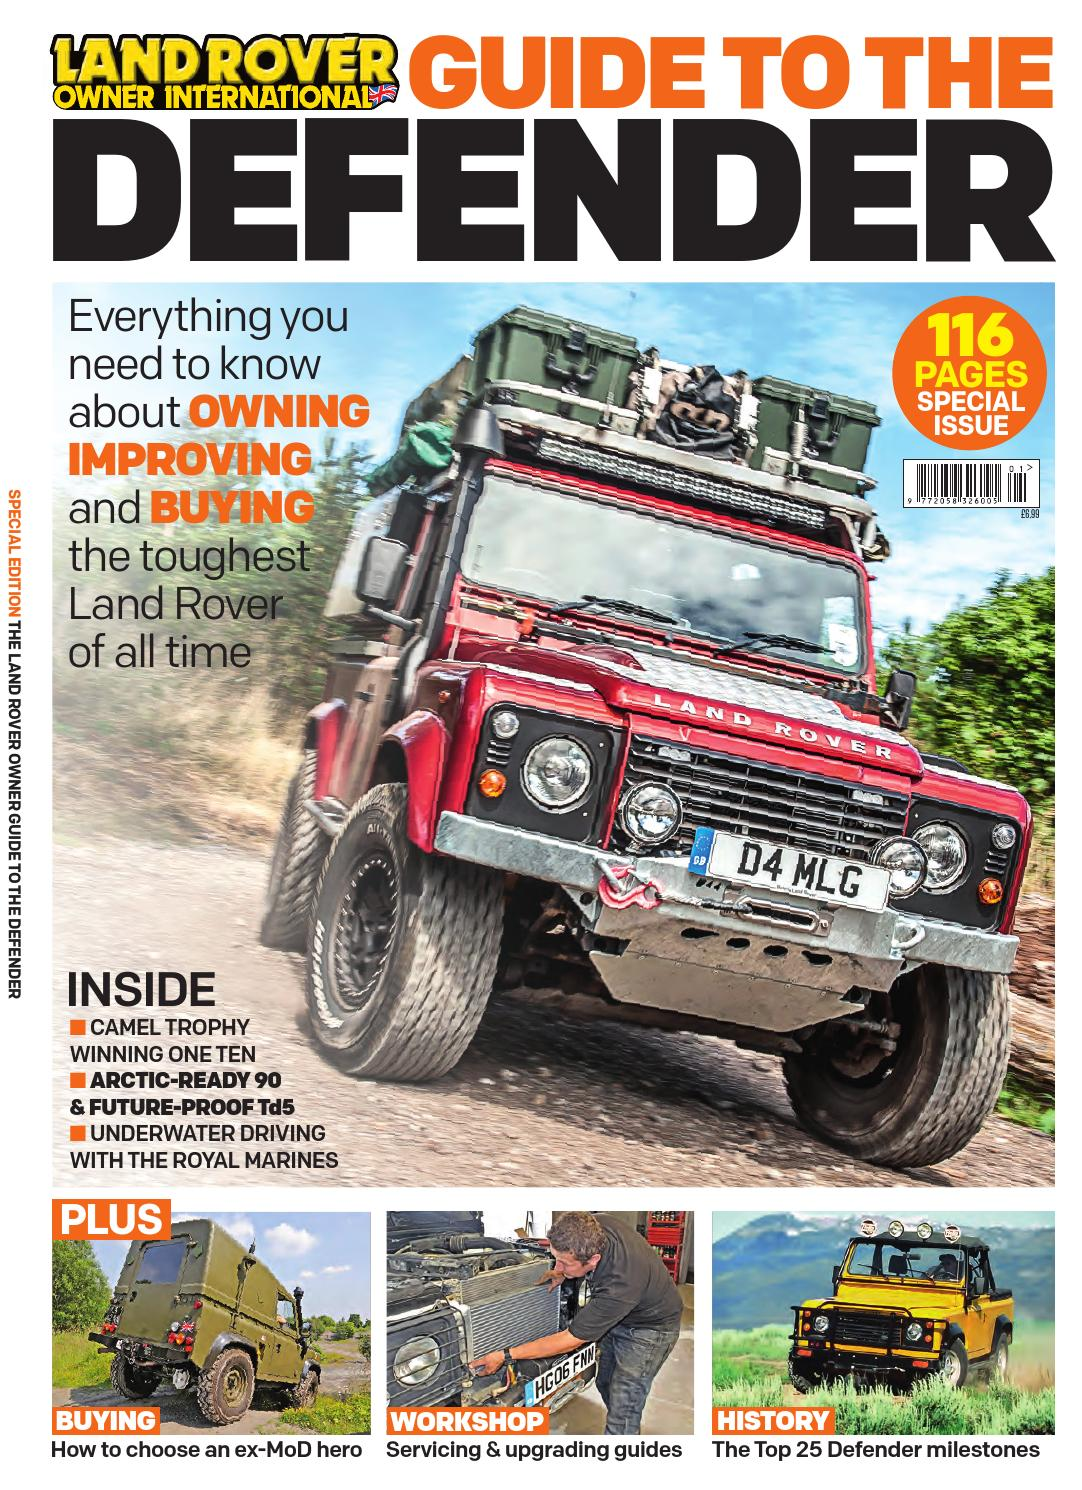 Lro S Guide To The Defender By Land Rover Owner